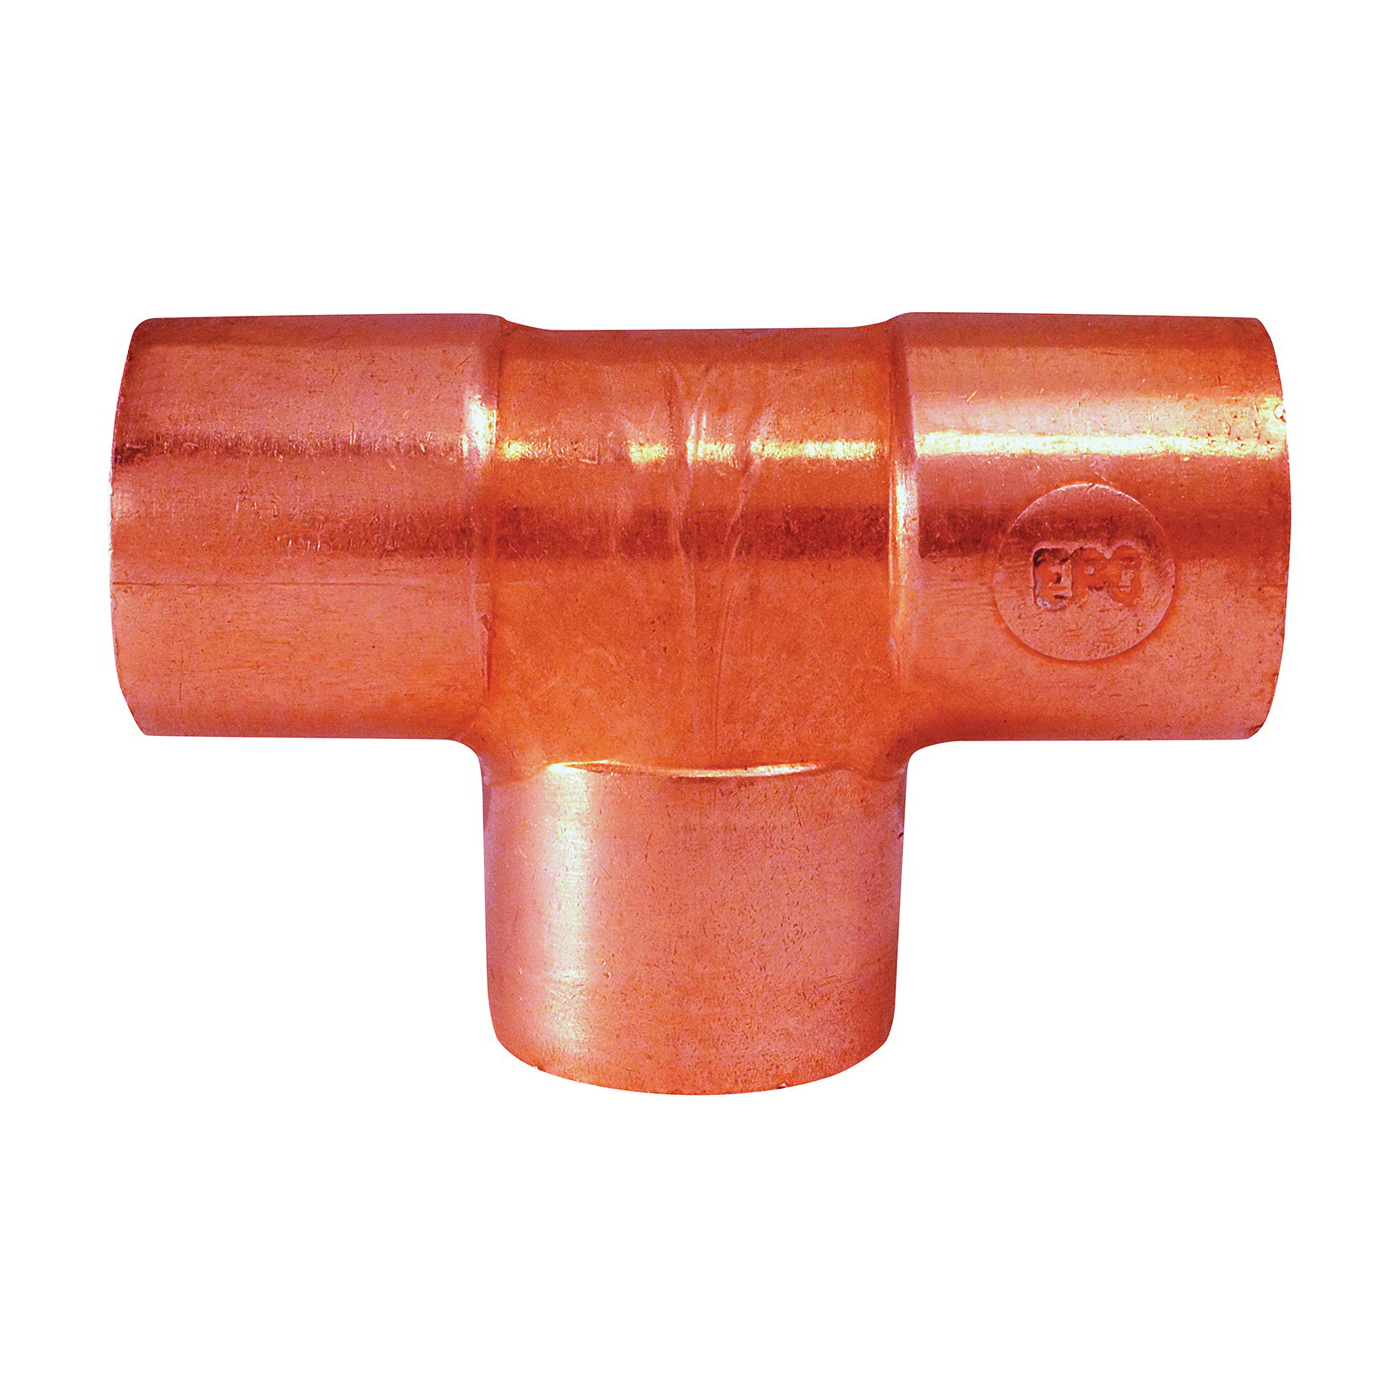 Picture of EPC 111 32768 Pipe Tee, 3/4 in, Sweat, Copper